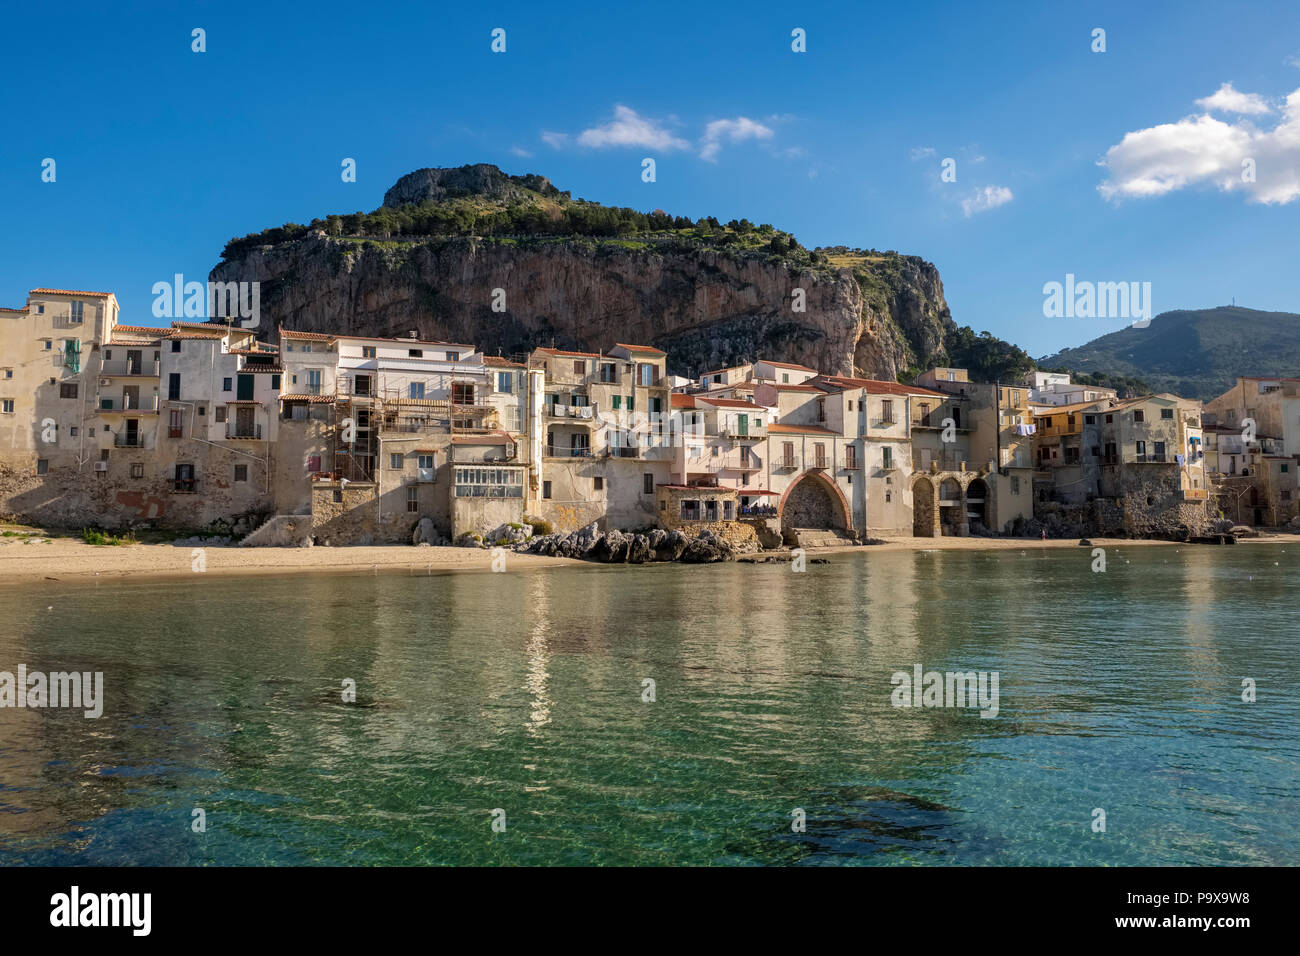 Sicily, Italy, Europe - Medieval fishermen's houses on the seafront beach in Cefalu, Sicily in summer - Stock Image